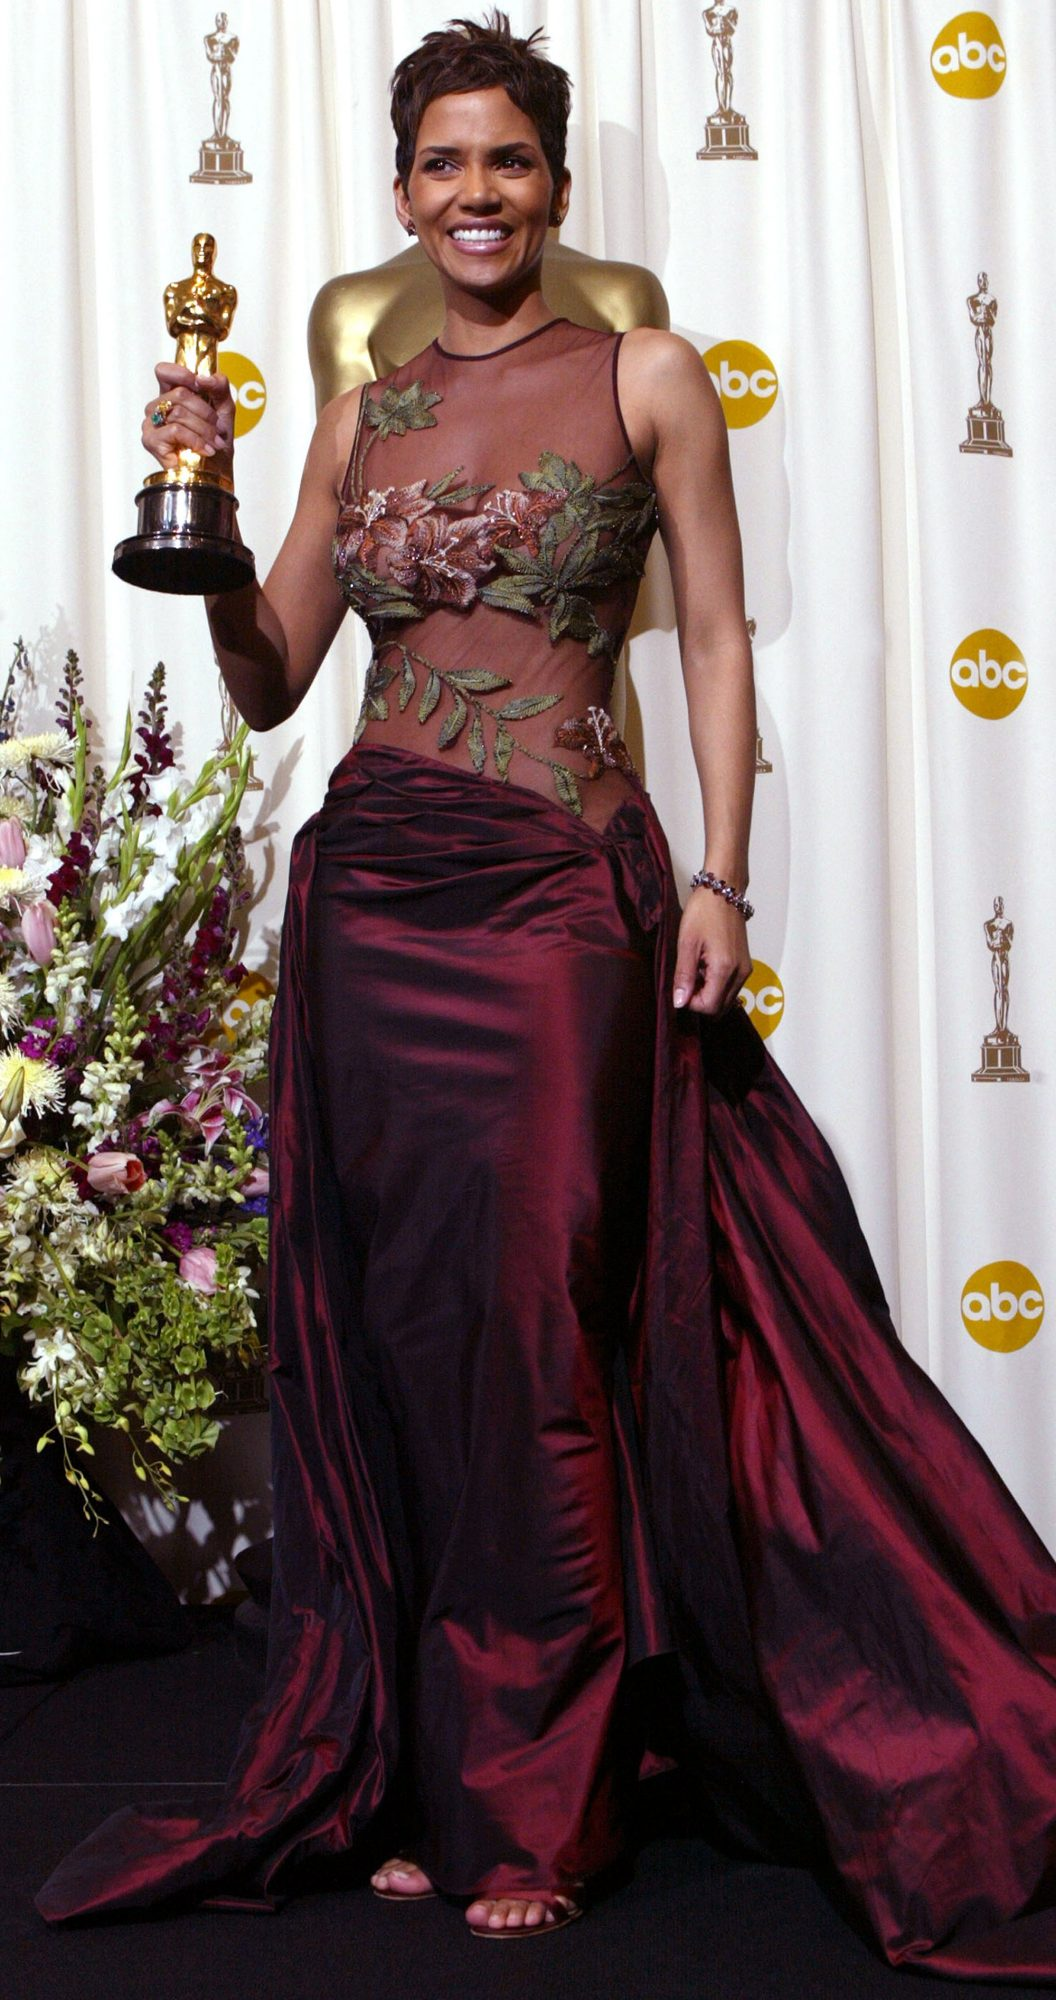 oscars-red-carpet-moments-halle-berry.jpg